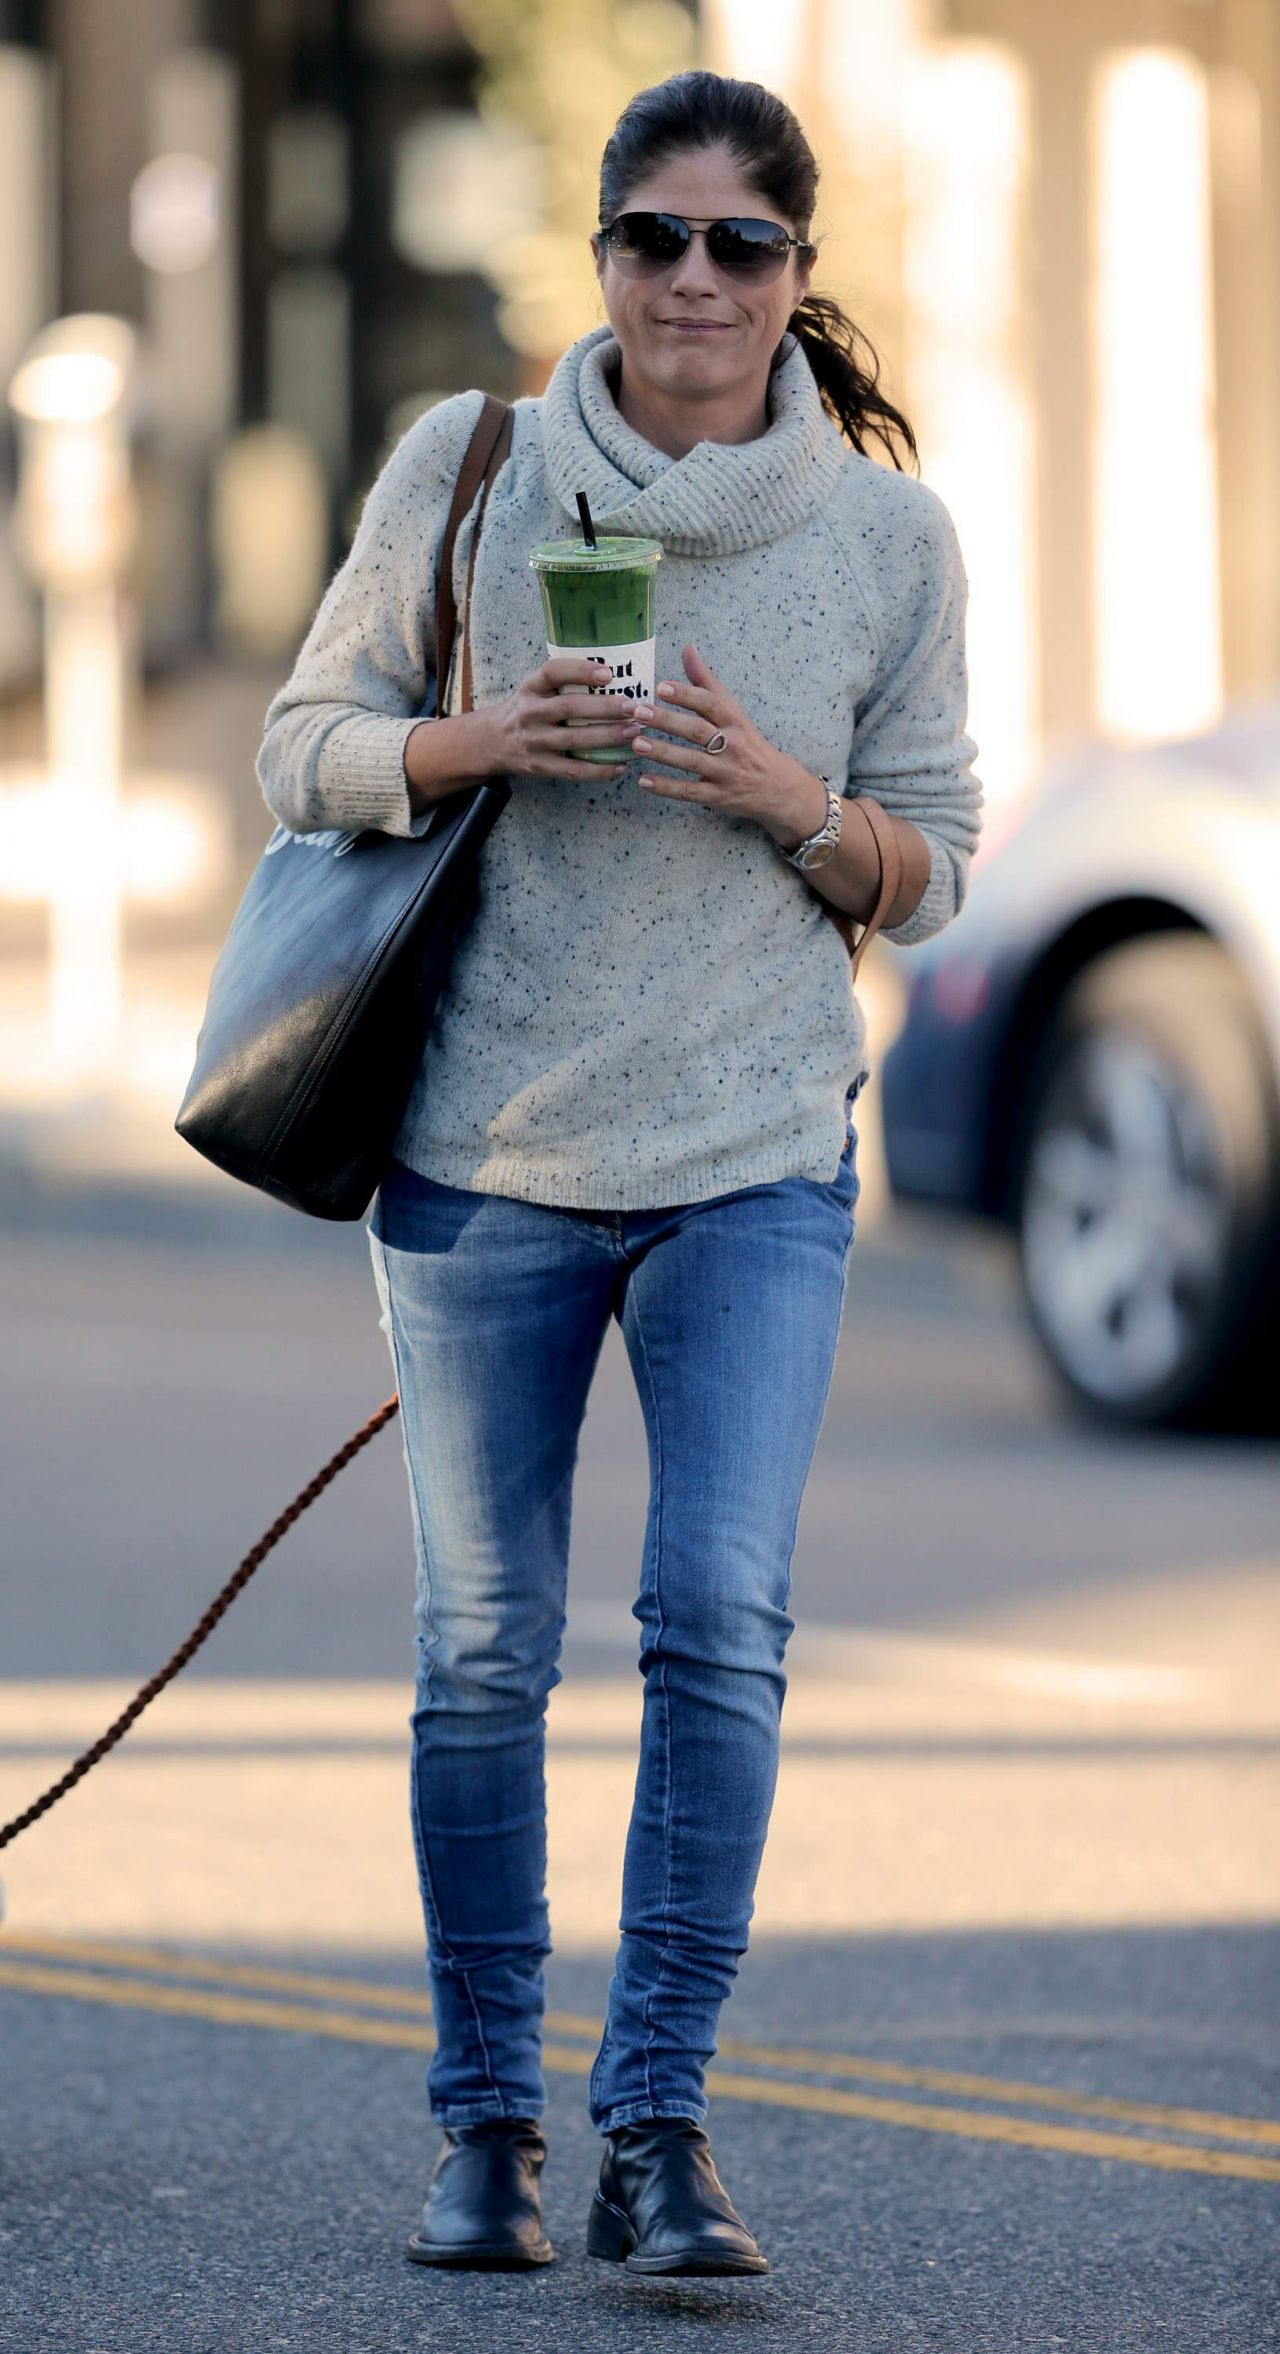 Selma blair casual style out in los angeles april 2019 - 2019 year